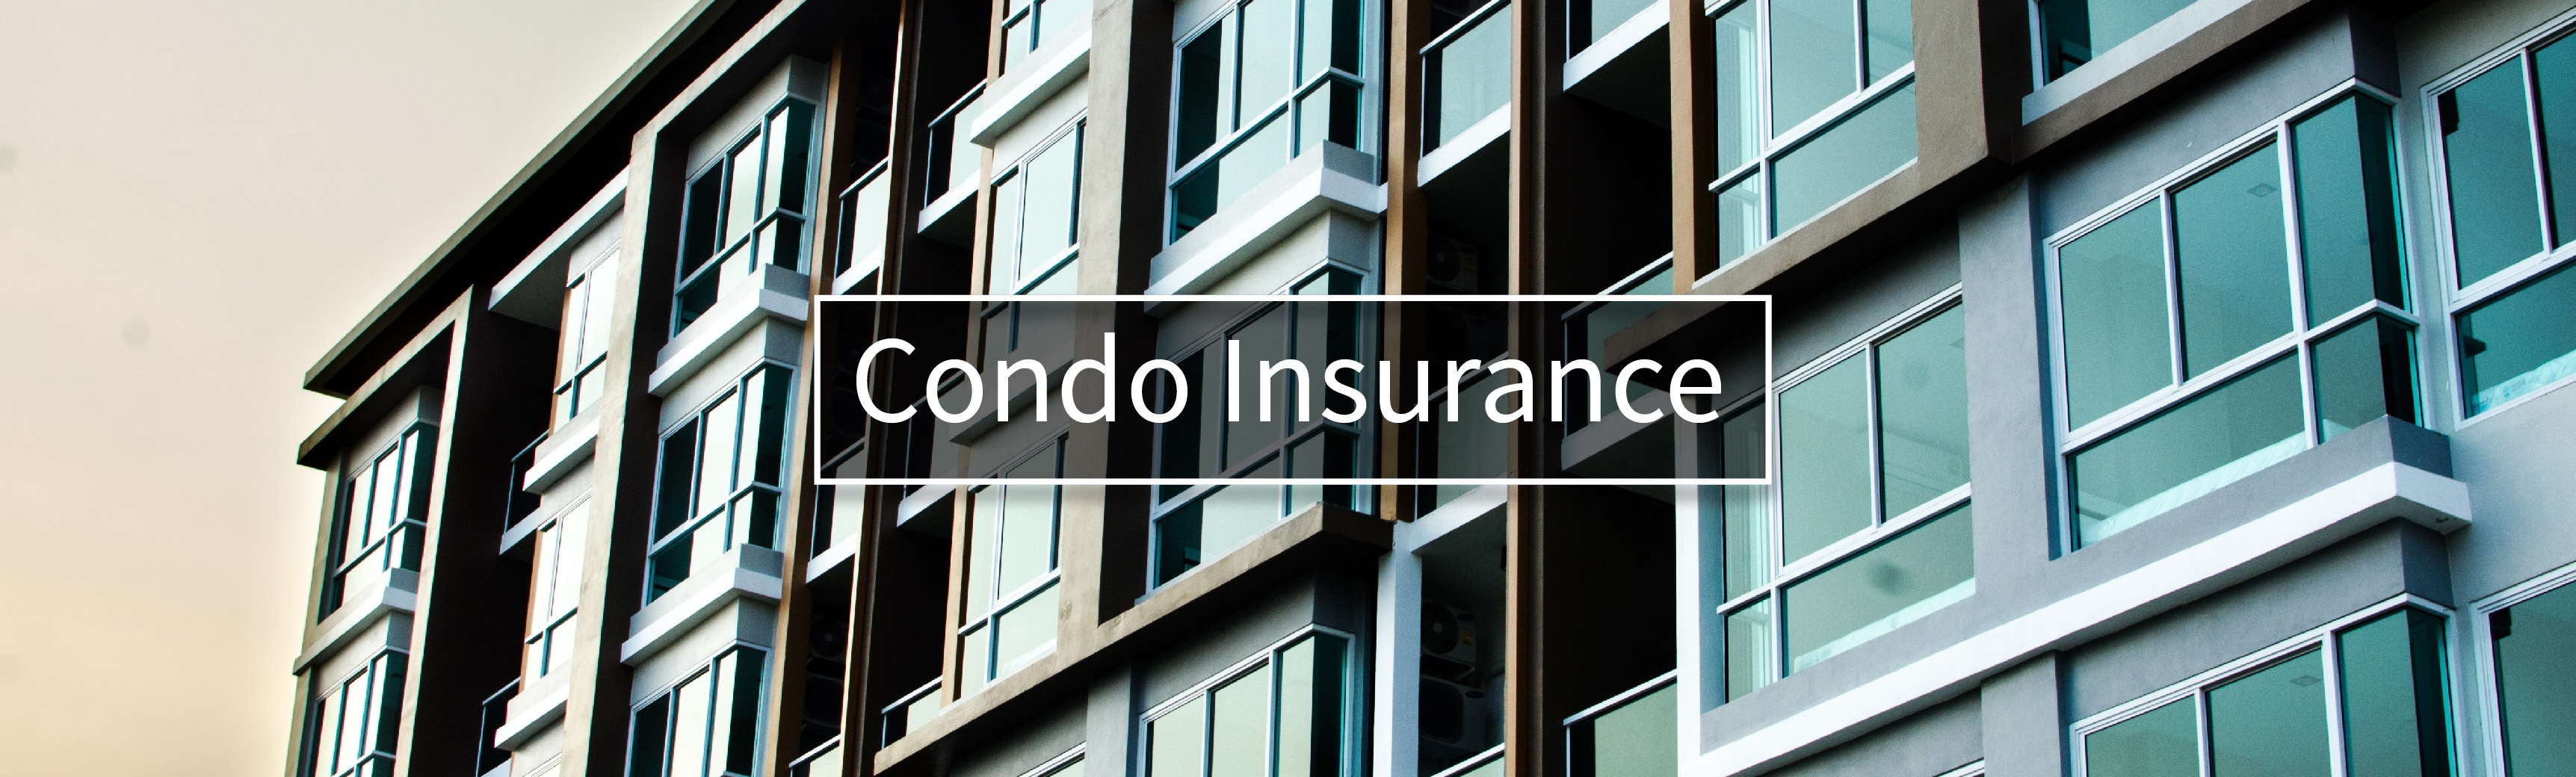 condo Insurance Massachusetts